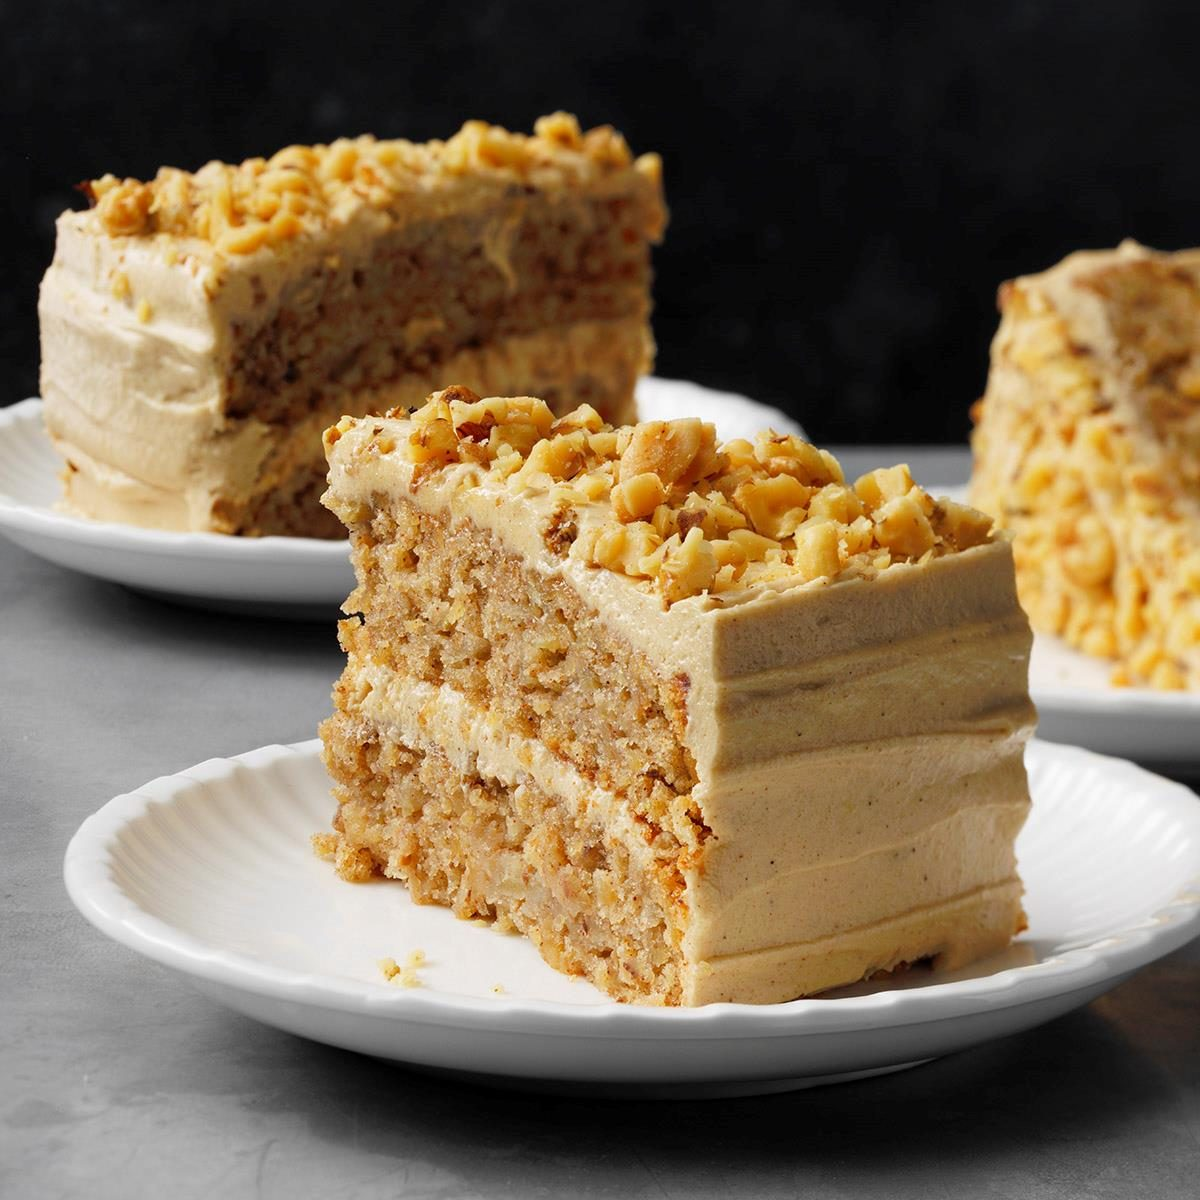 Kentucky: Apple Spice Cake with Brown Sugar Frosting